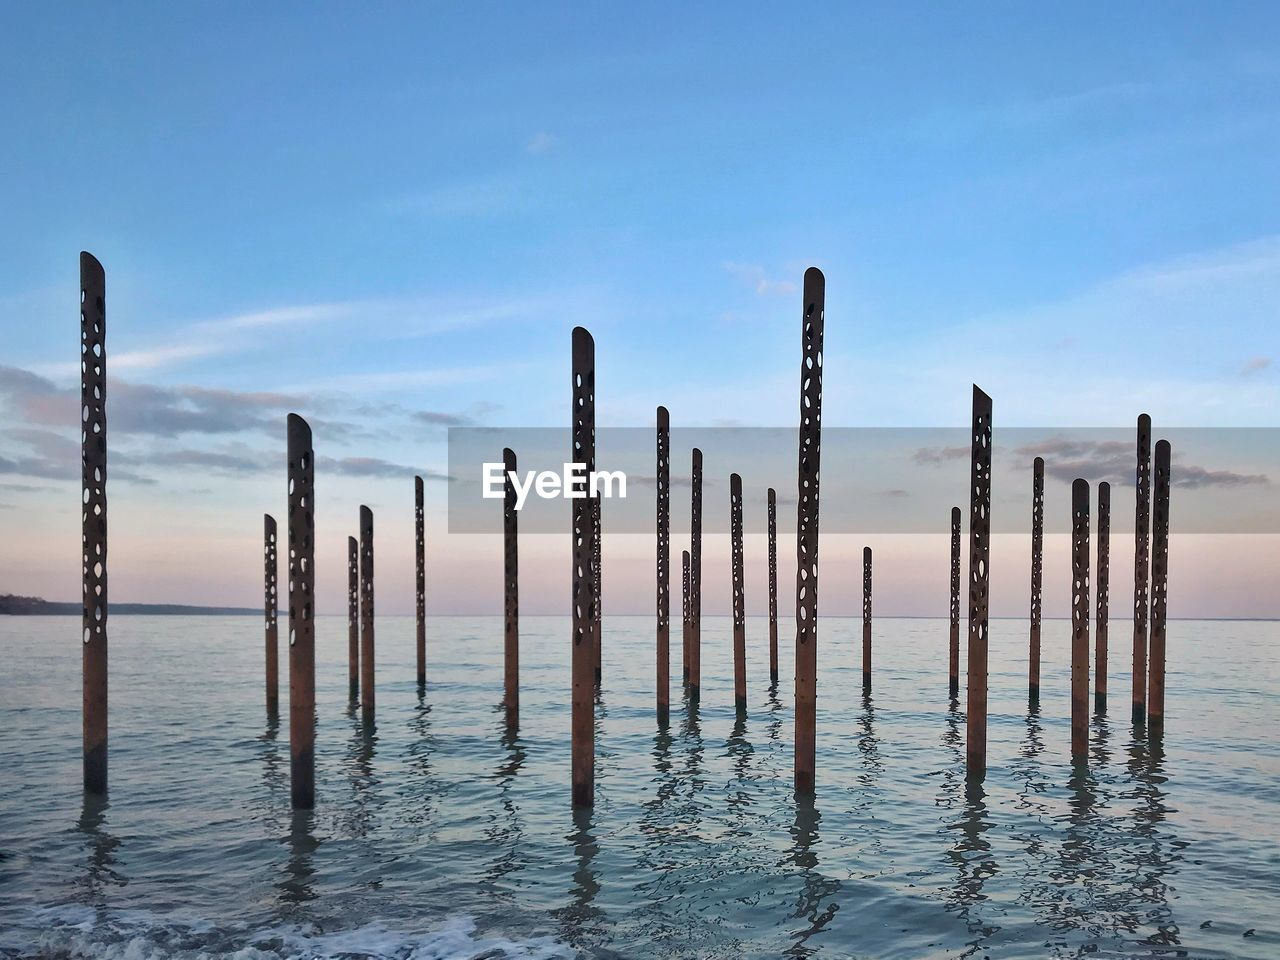 sky, wooden post, nature, post, no people, wood - material, water, beauty in nature, sea, day, waterfront, cloud - sky, tranquility, outdoors, scenics - nature, focus on foreground, tranquil scene, blue, architecture